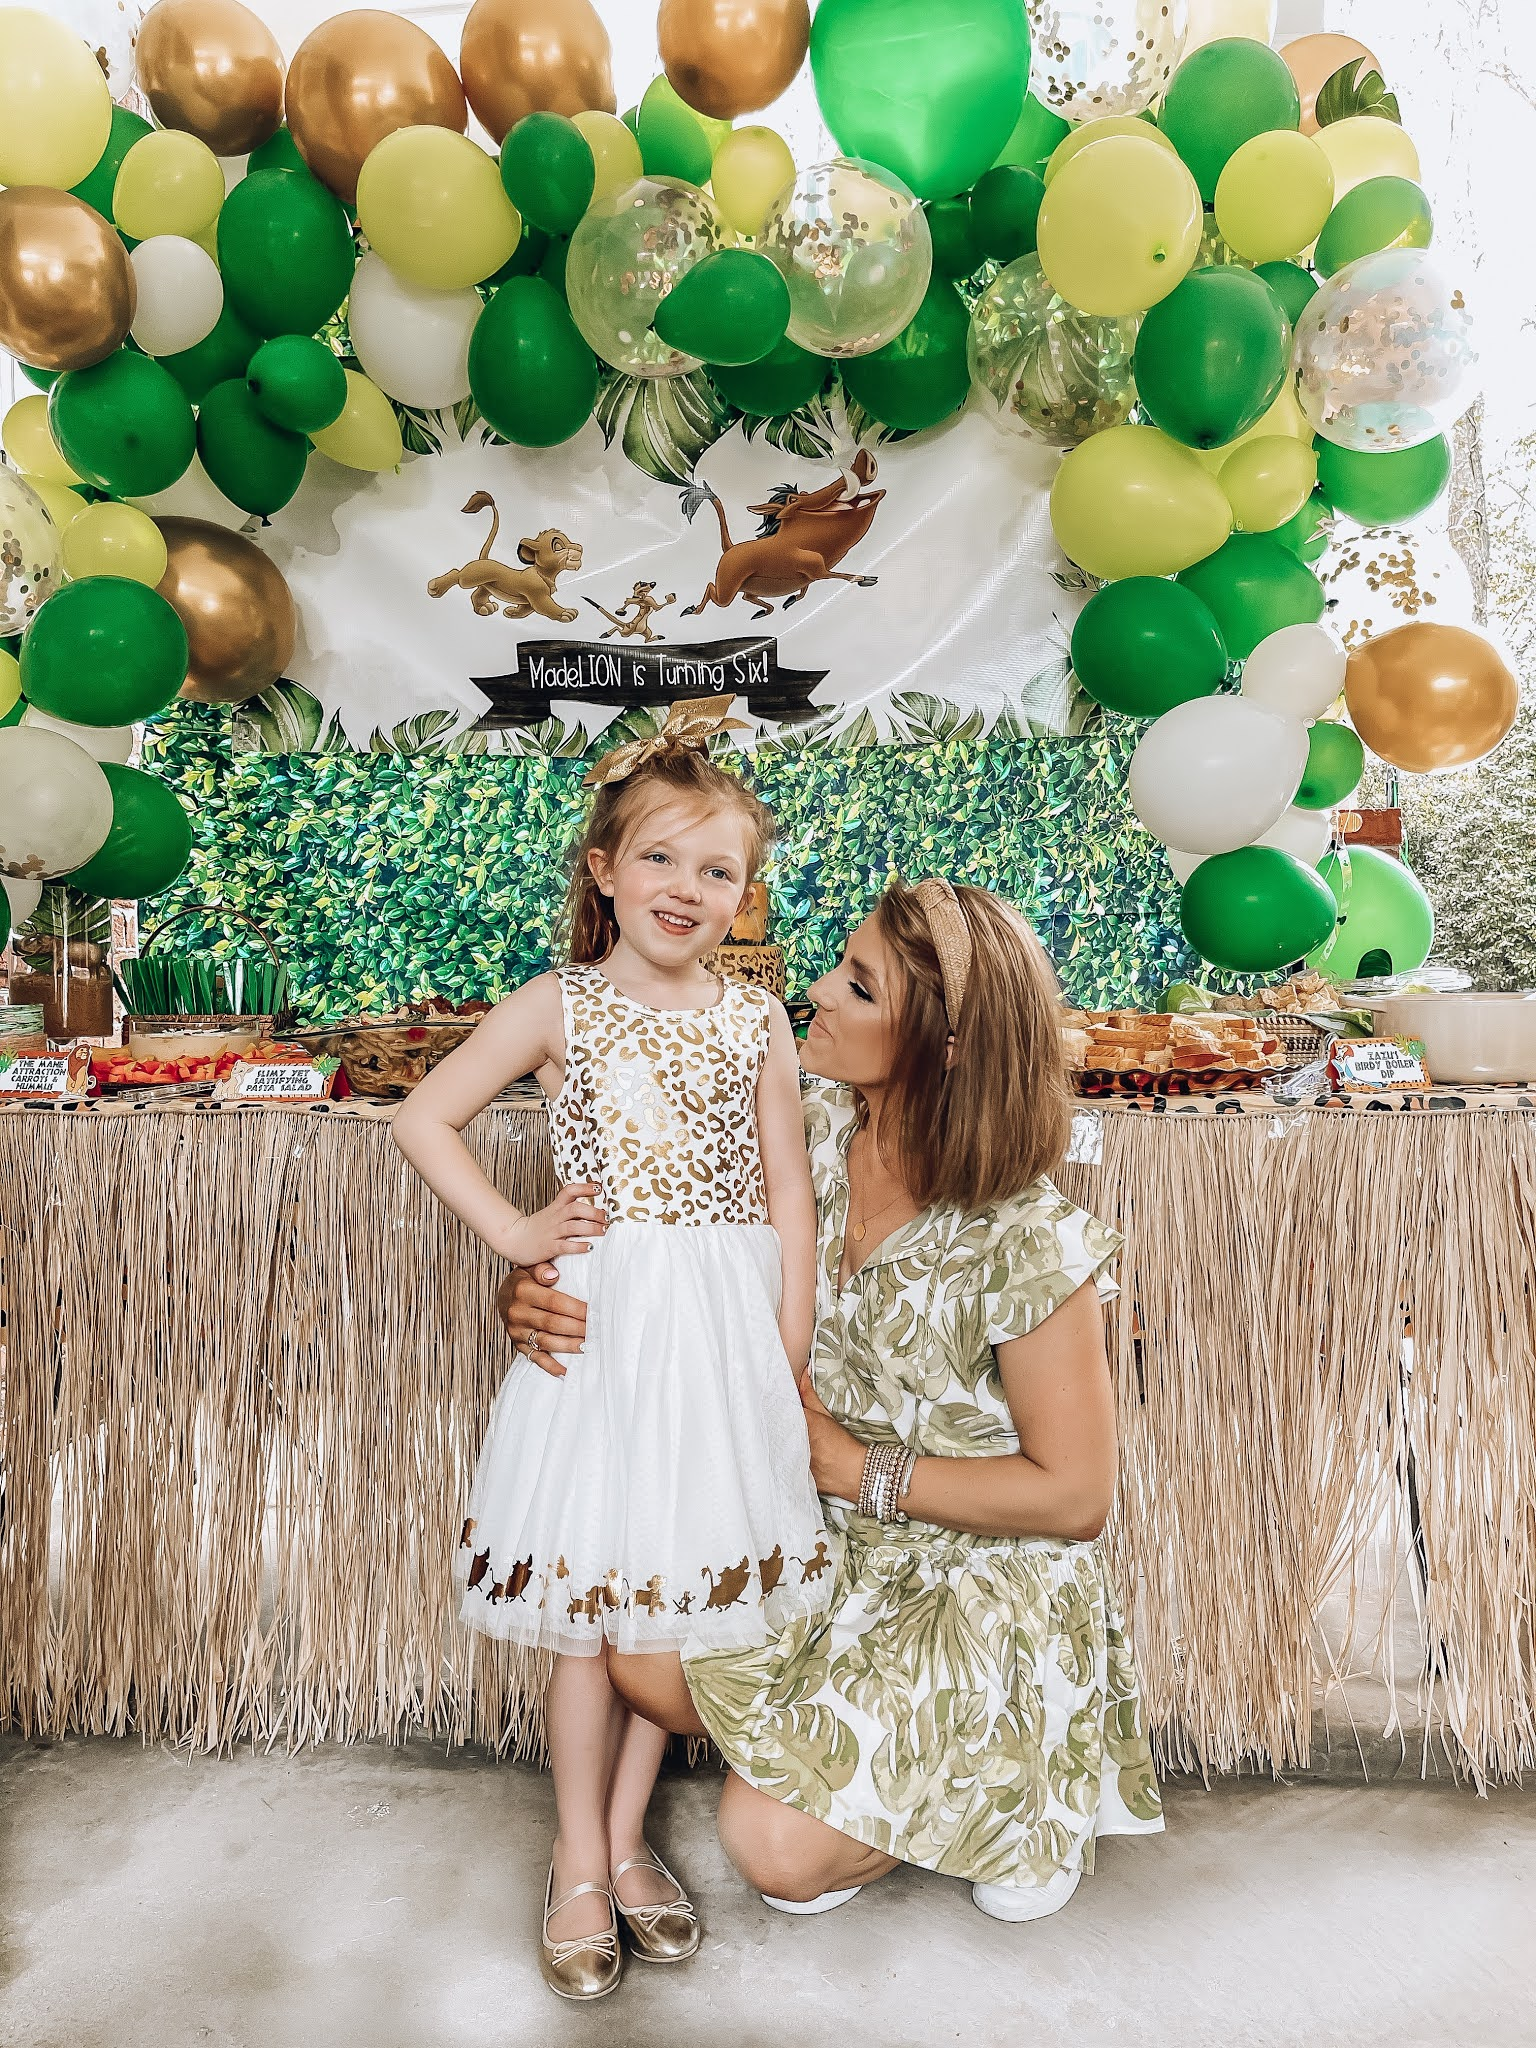 Madeline's Lion King 6th Birthday Party - Something Delightful Blog #partyideas #kidsbirthdayparty #lionkingparty #wildoneparty #safariparty #animalprintparty